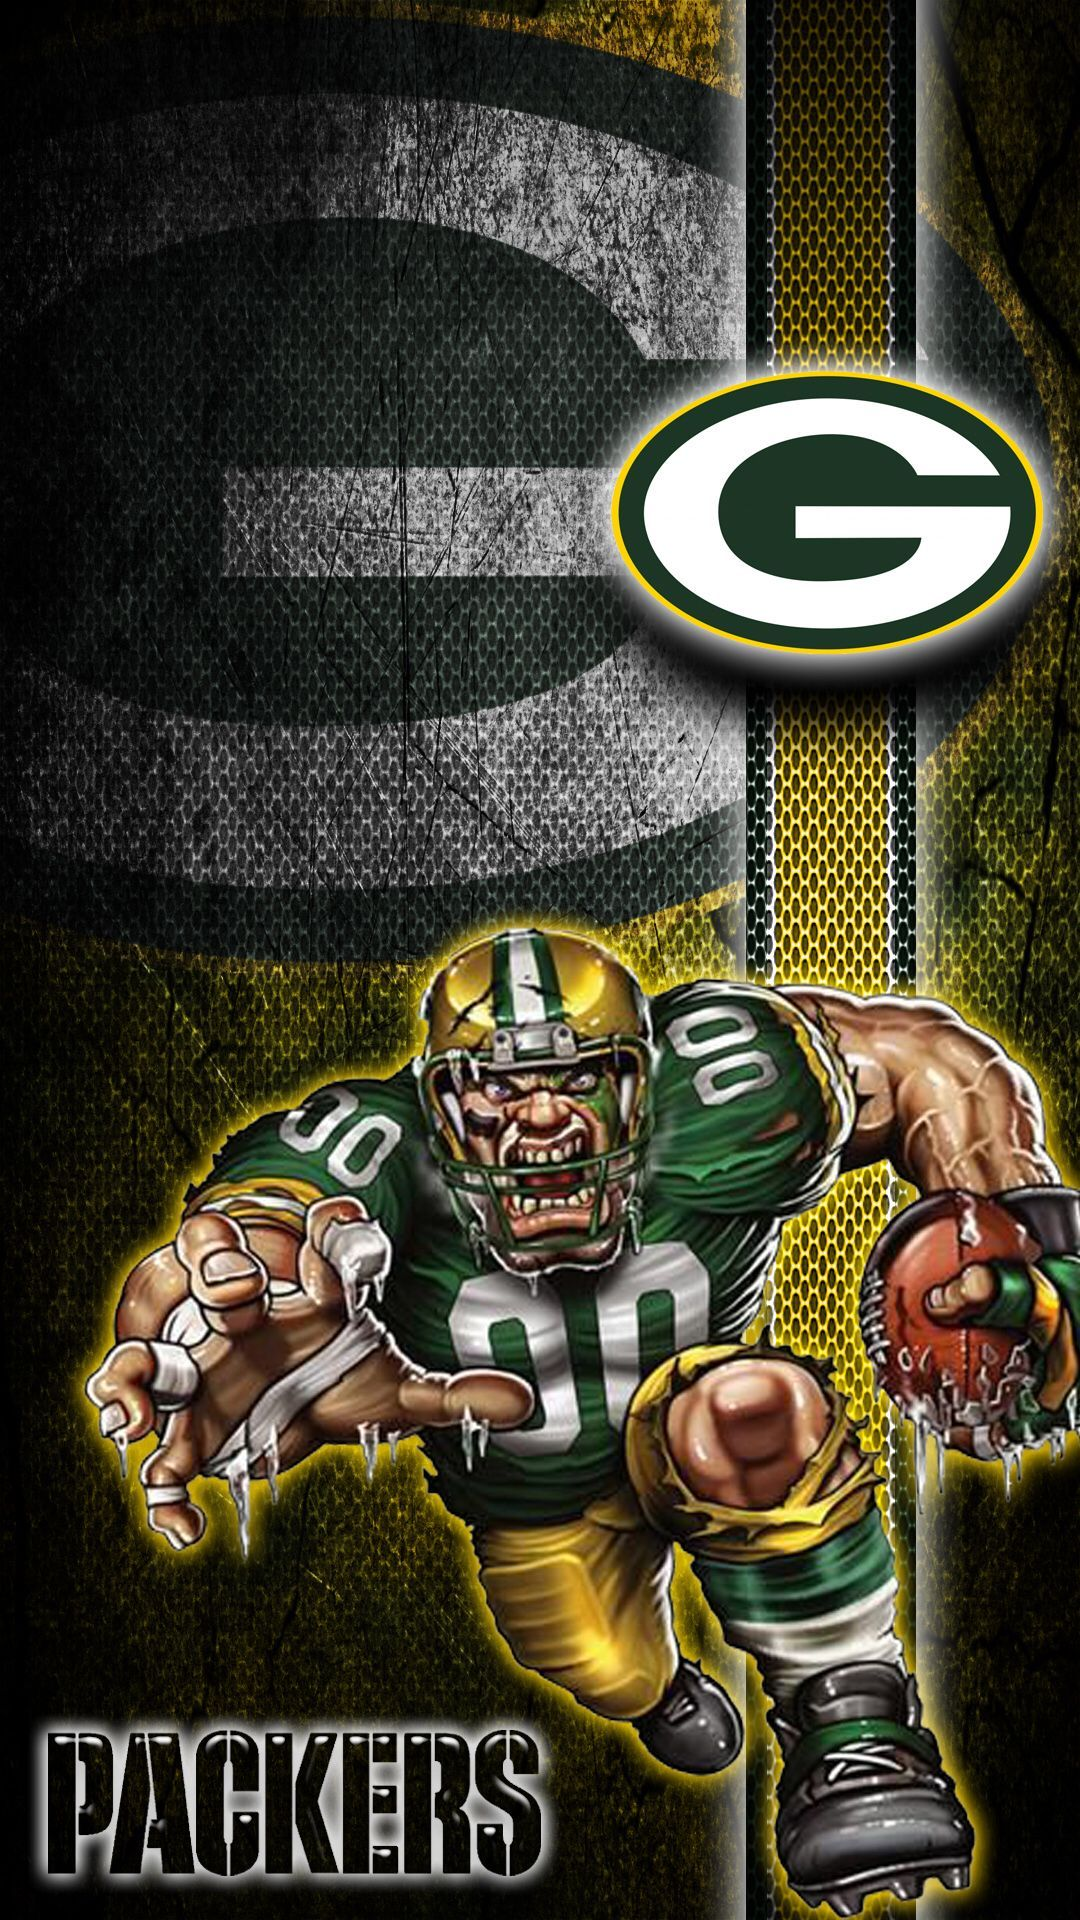 Visit Aaron Rodgers Green Bay Packers Background On High Definition Wallpaper At Rainbowwa In 2020 Green Bay Packers Wallpaper Green Bay Packers Green Bay Packers Logo